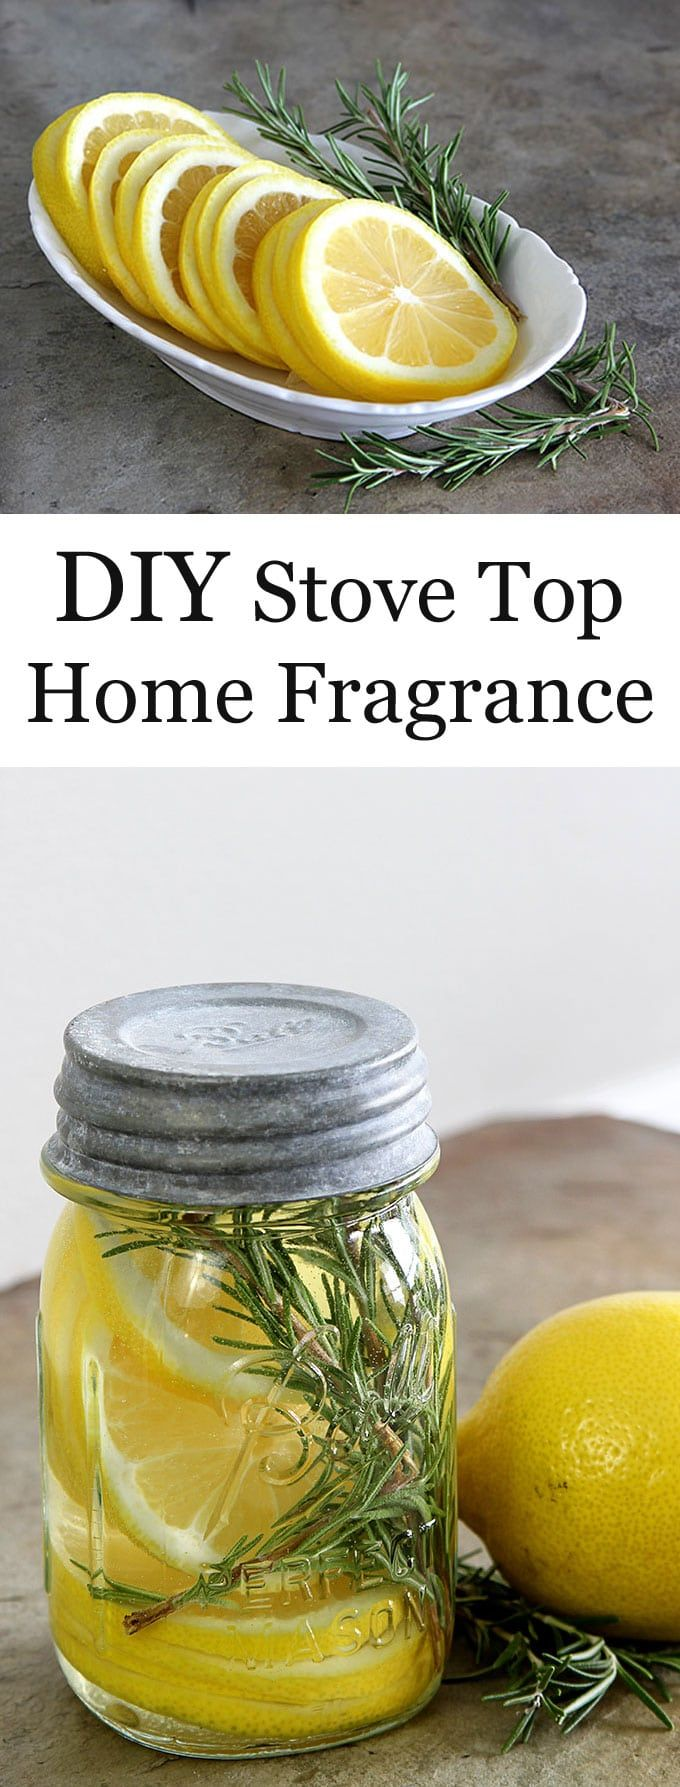 Learn how to make a DIY Stove Top Home Fragrance with just a few ingredients. A quick and easy potpourri recipe to make your home smell fresh and cozy!